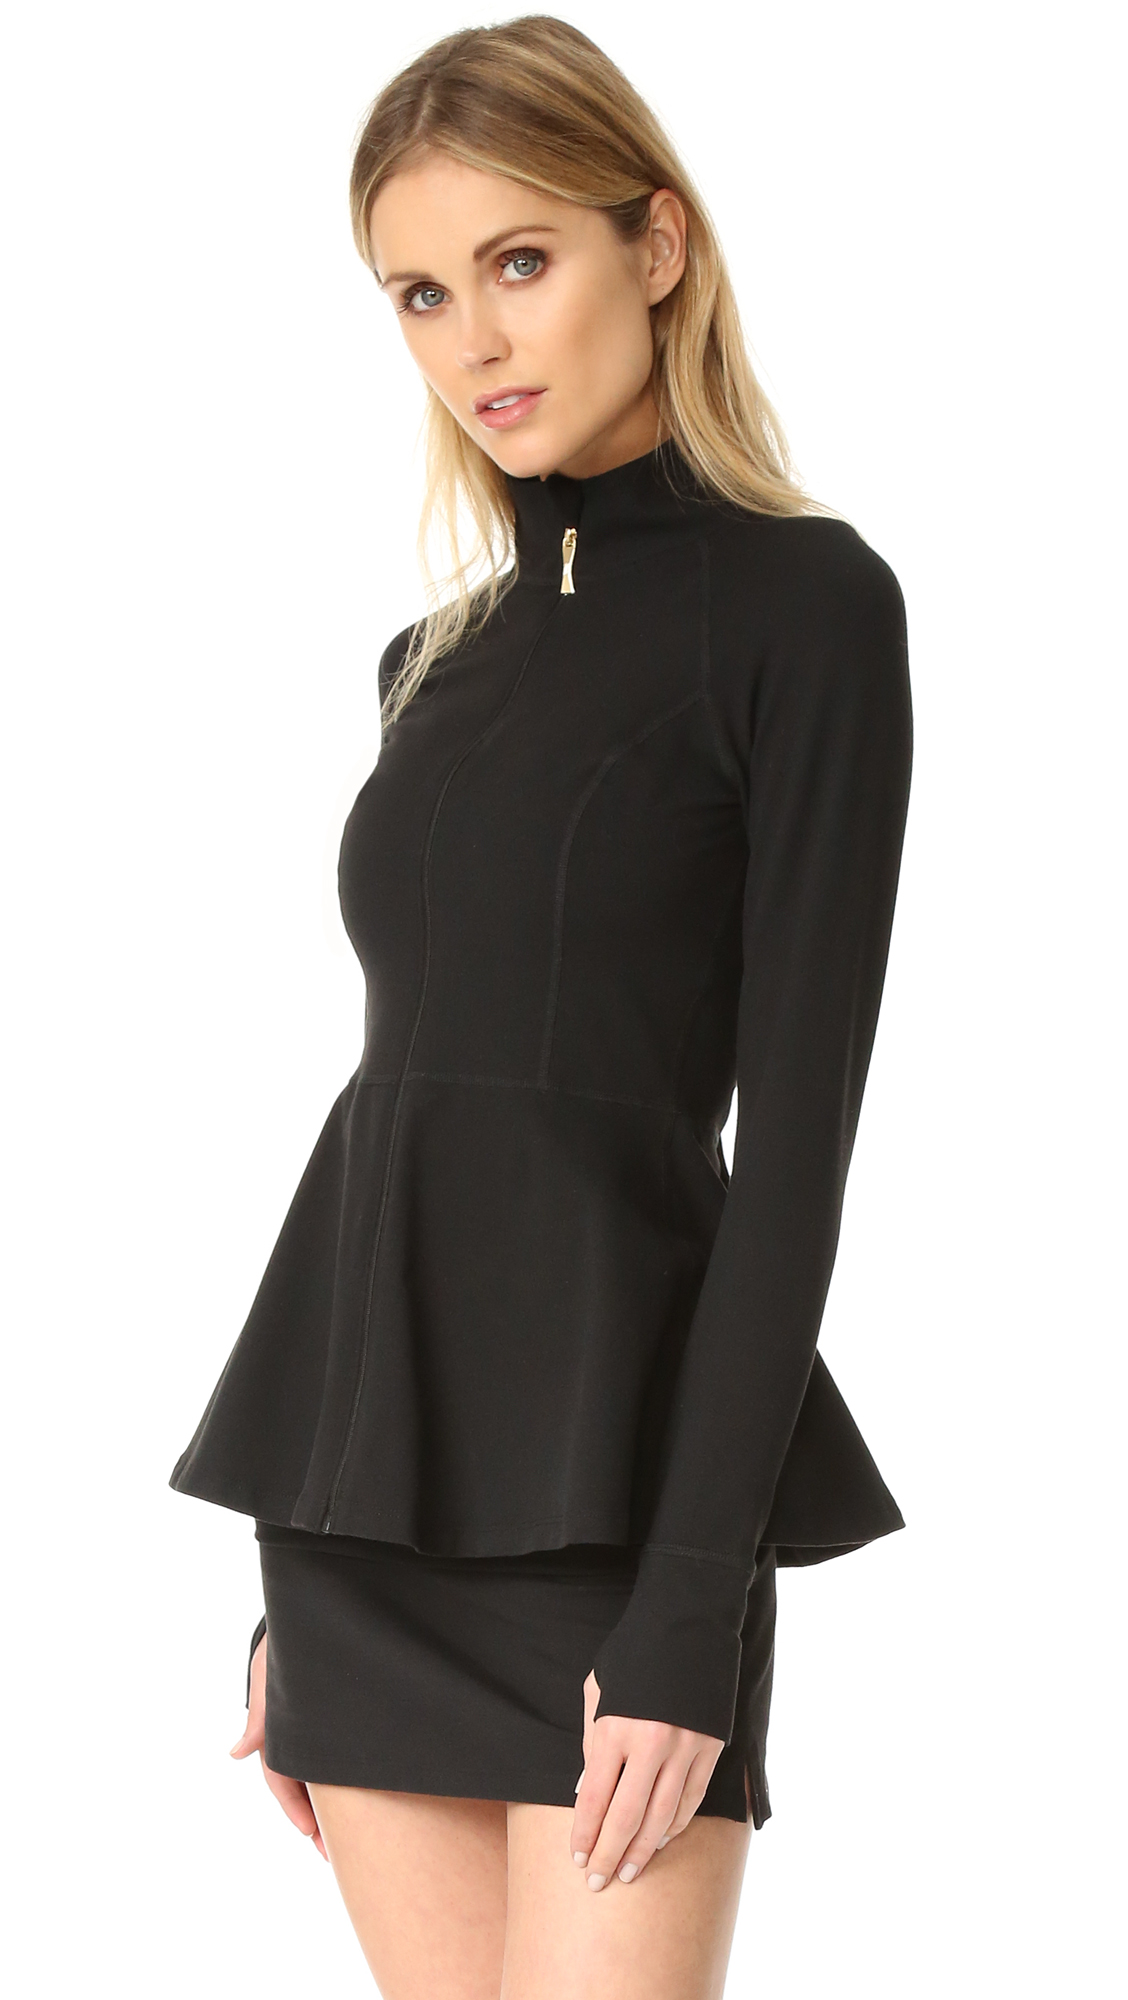 Beyond Yoga Kate Spade New York Back Bow Flounce Jacket - Jet Black